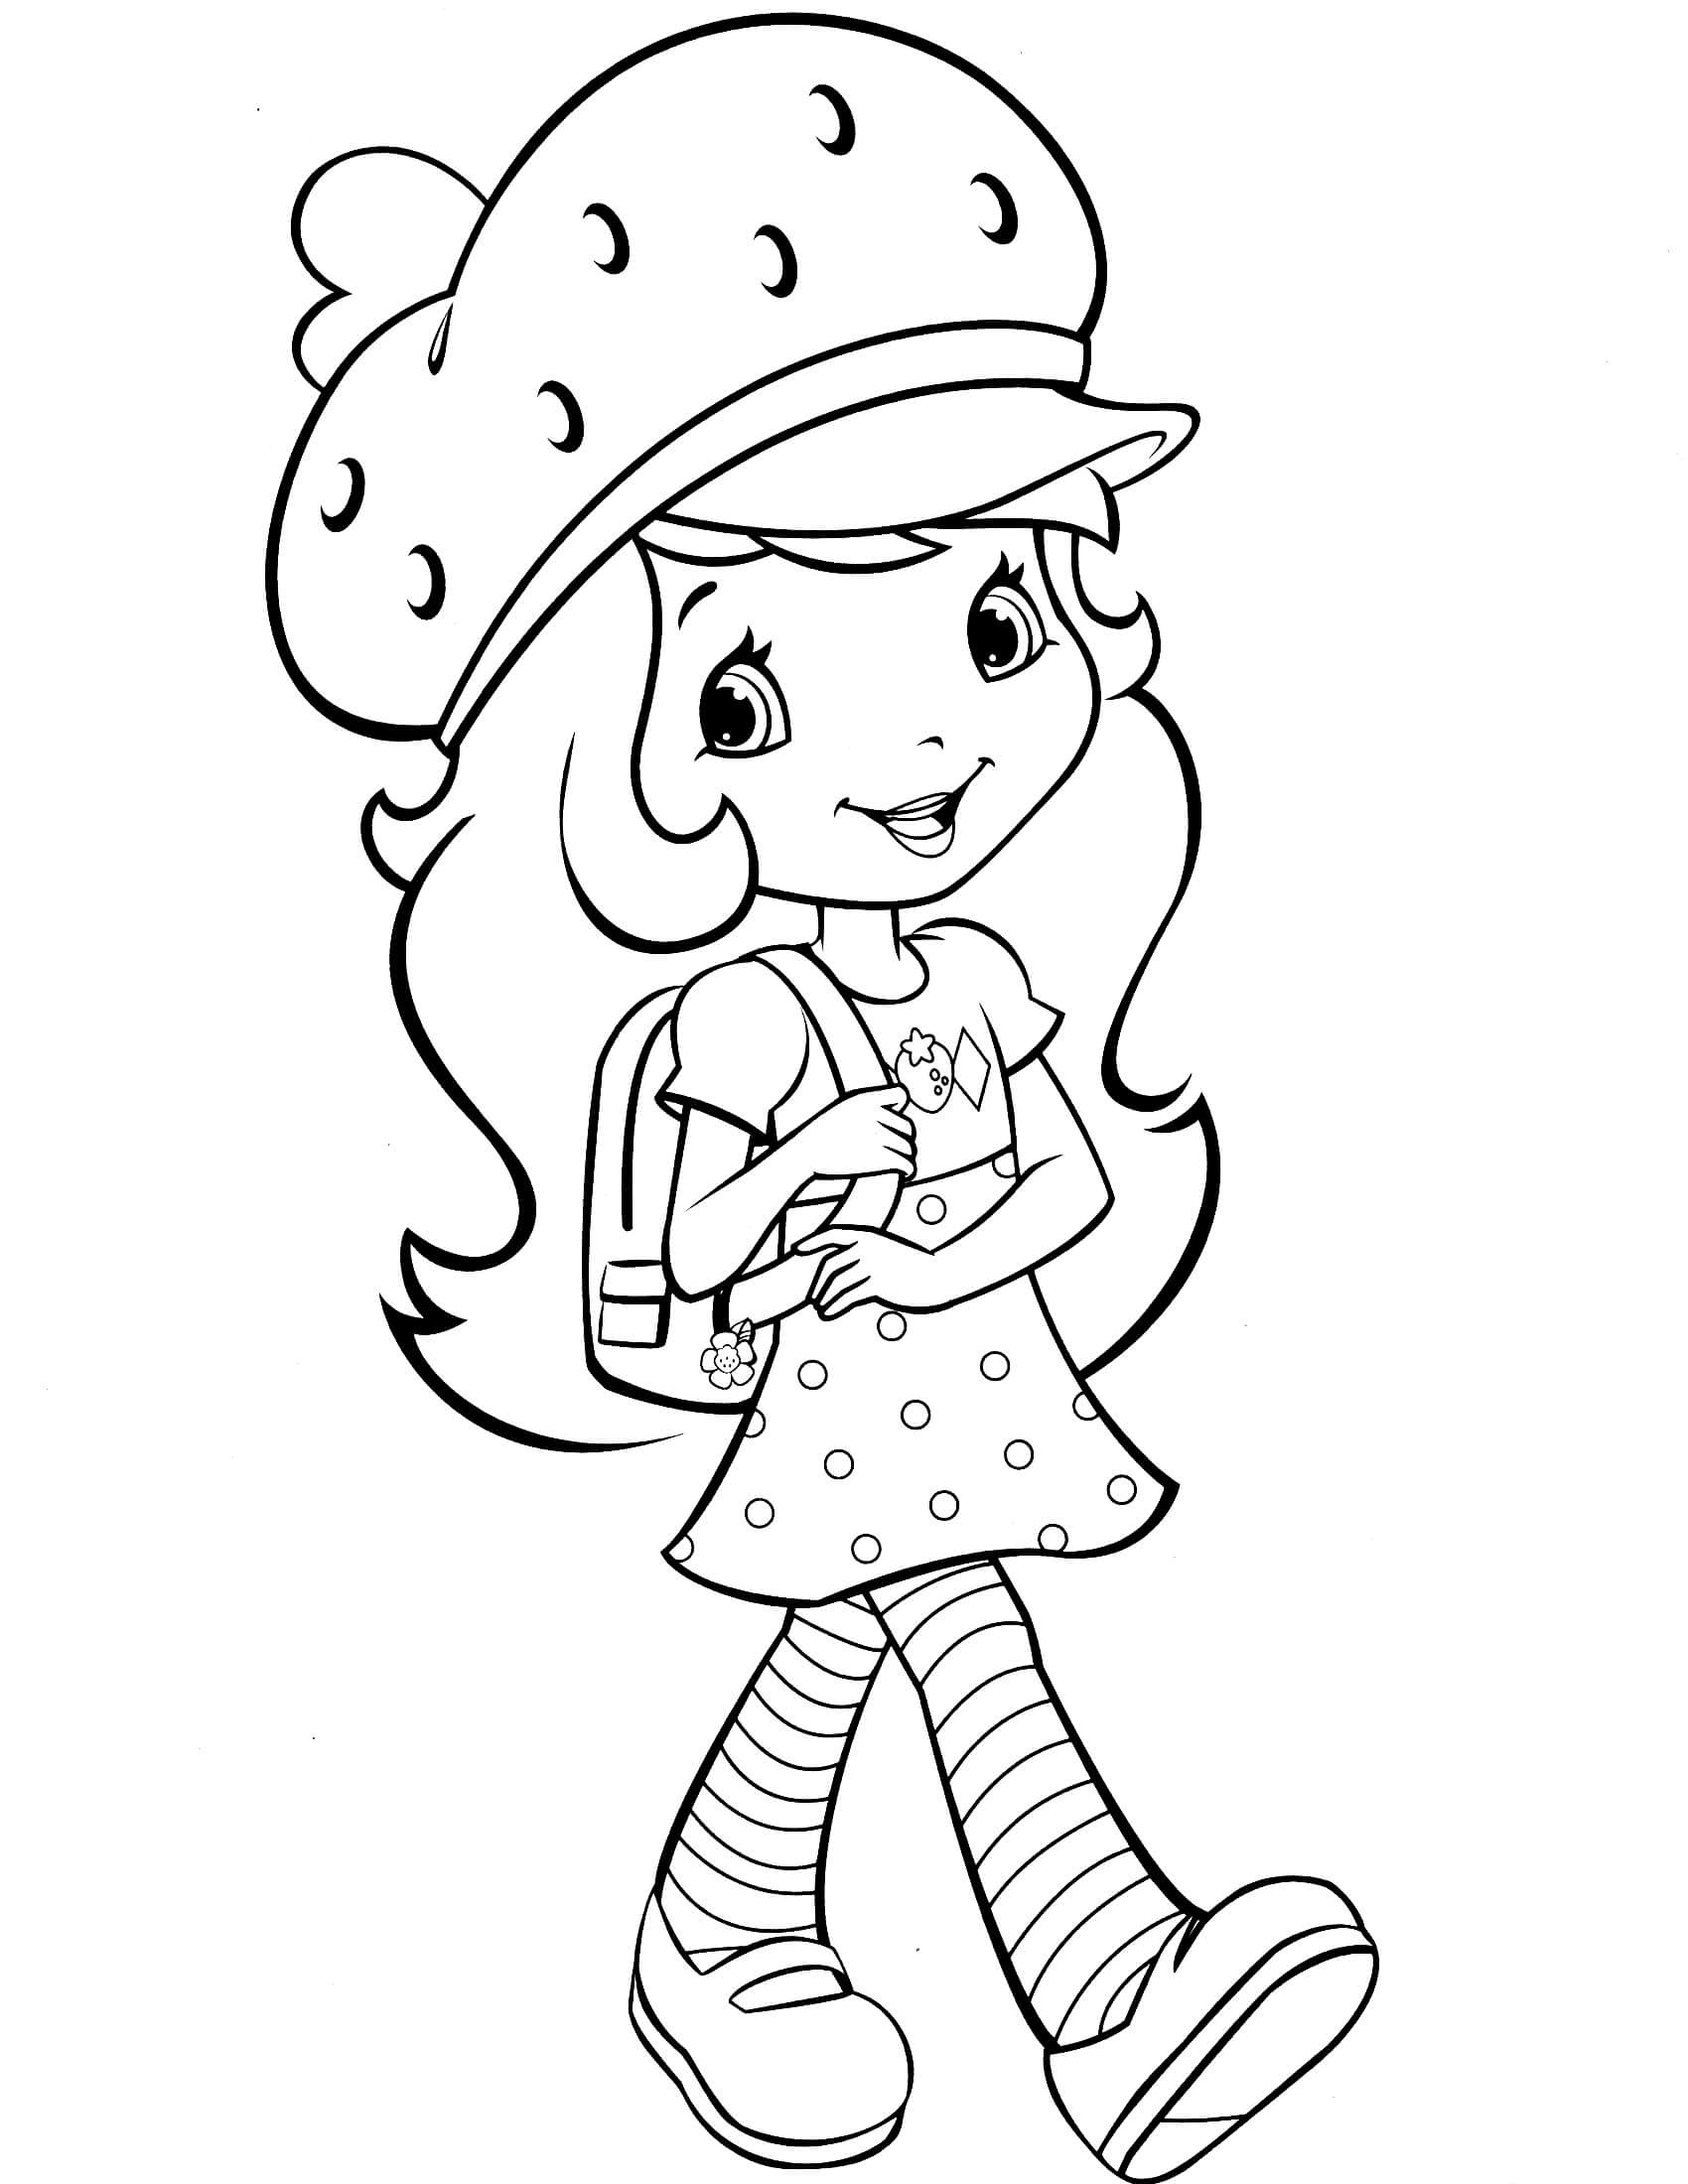 Strawberry Shortcake Coloring Page  Strawberry Shortcake 25 Coloringcolor